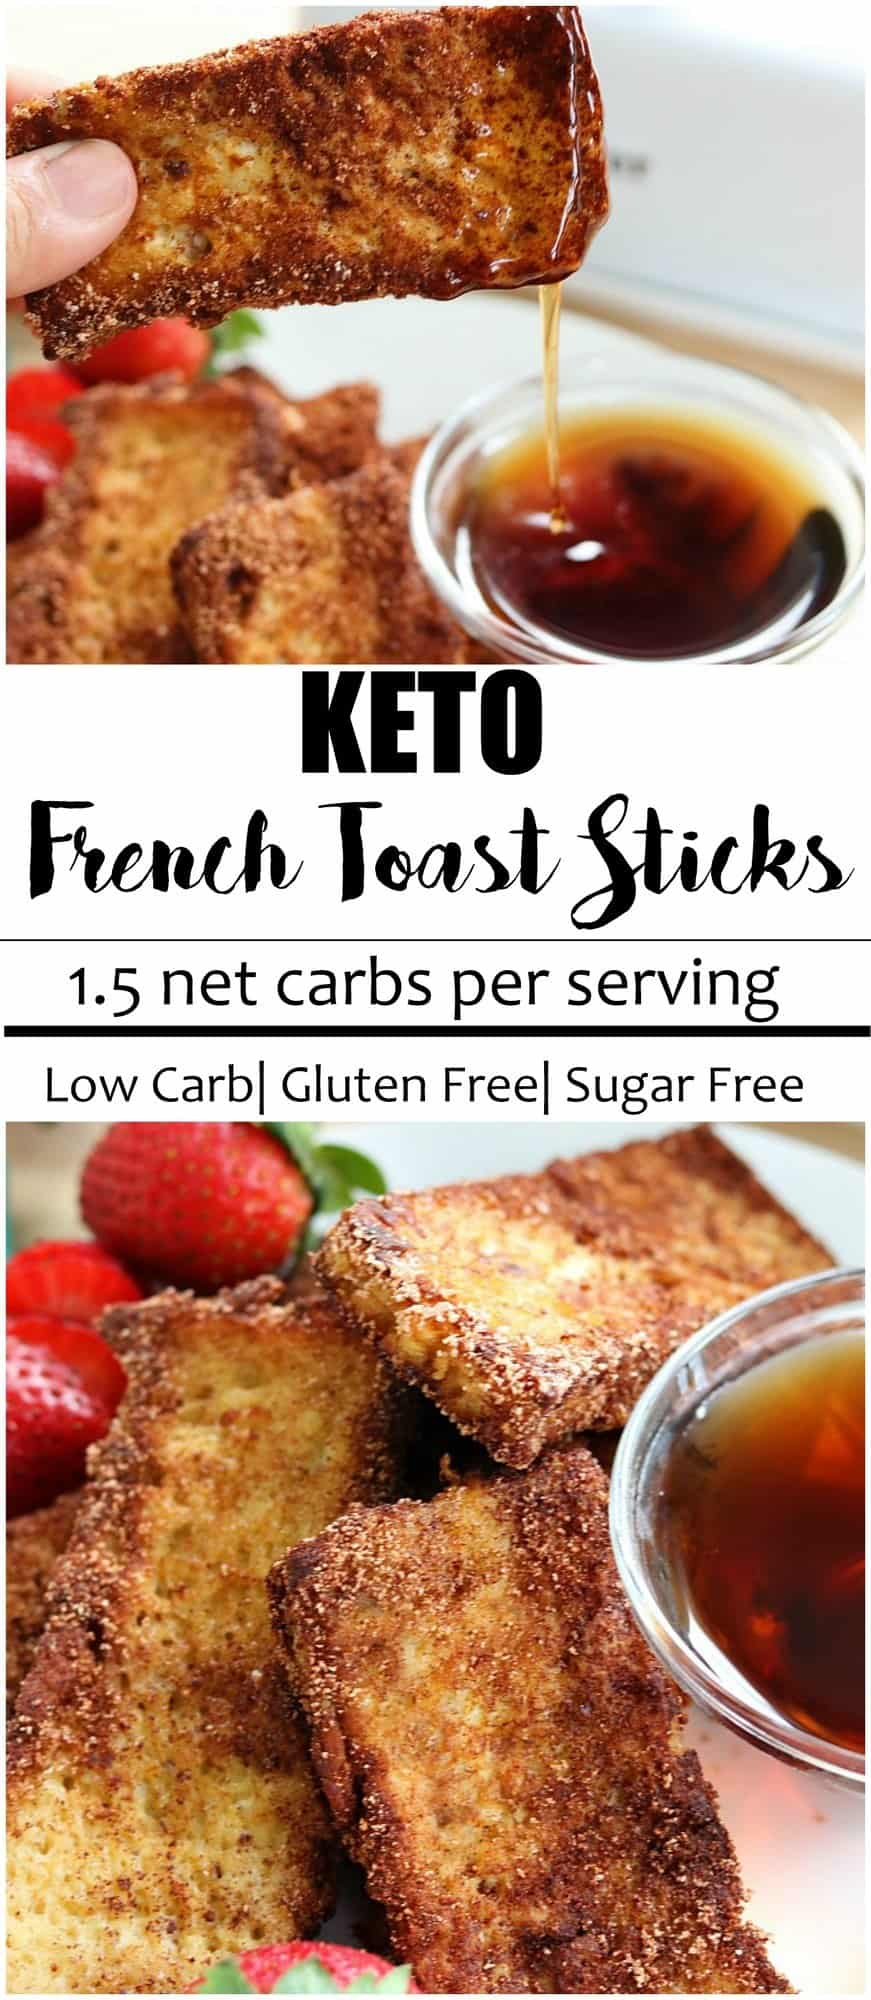 KETO FRENCH TOAST STICKS CINNAMON ONLY 1 5 NET CARBS PER SERVING